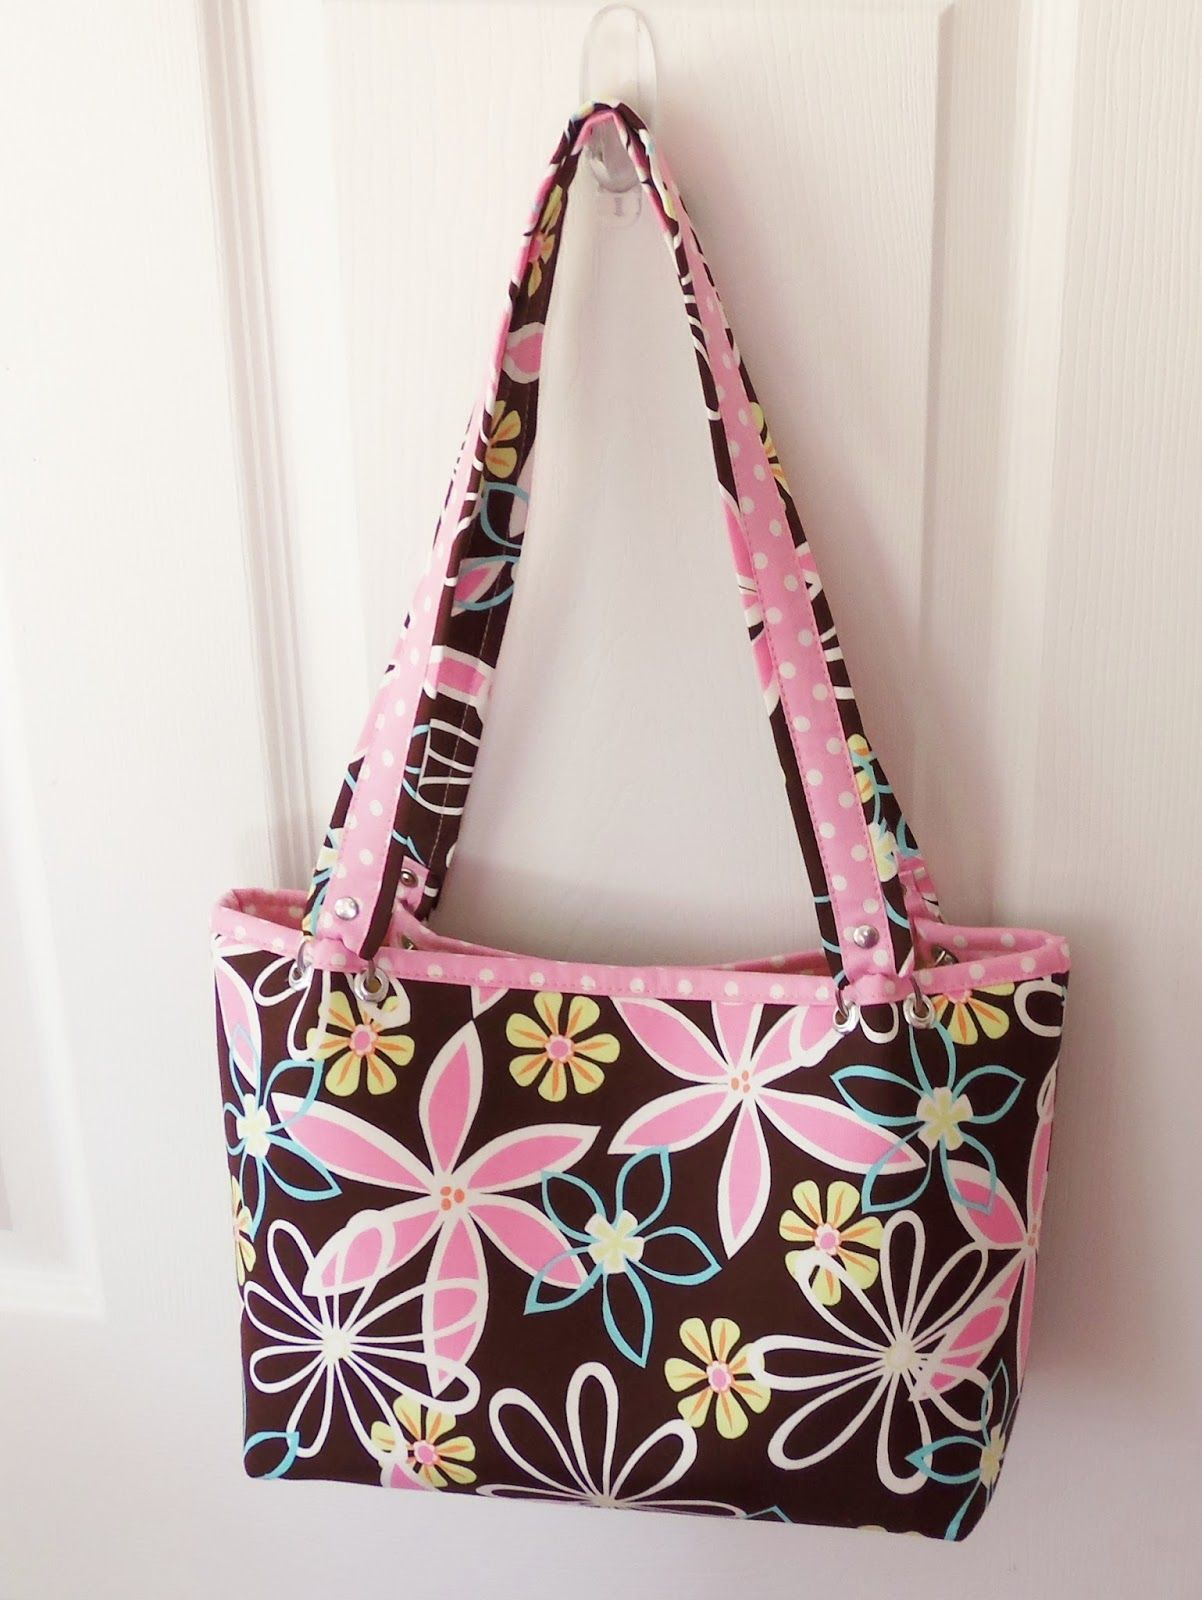 C2 Boxy Bag - Free Sewing Tutorial + Fabrics 101